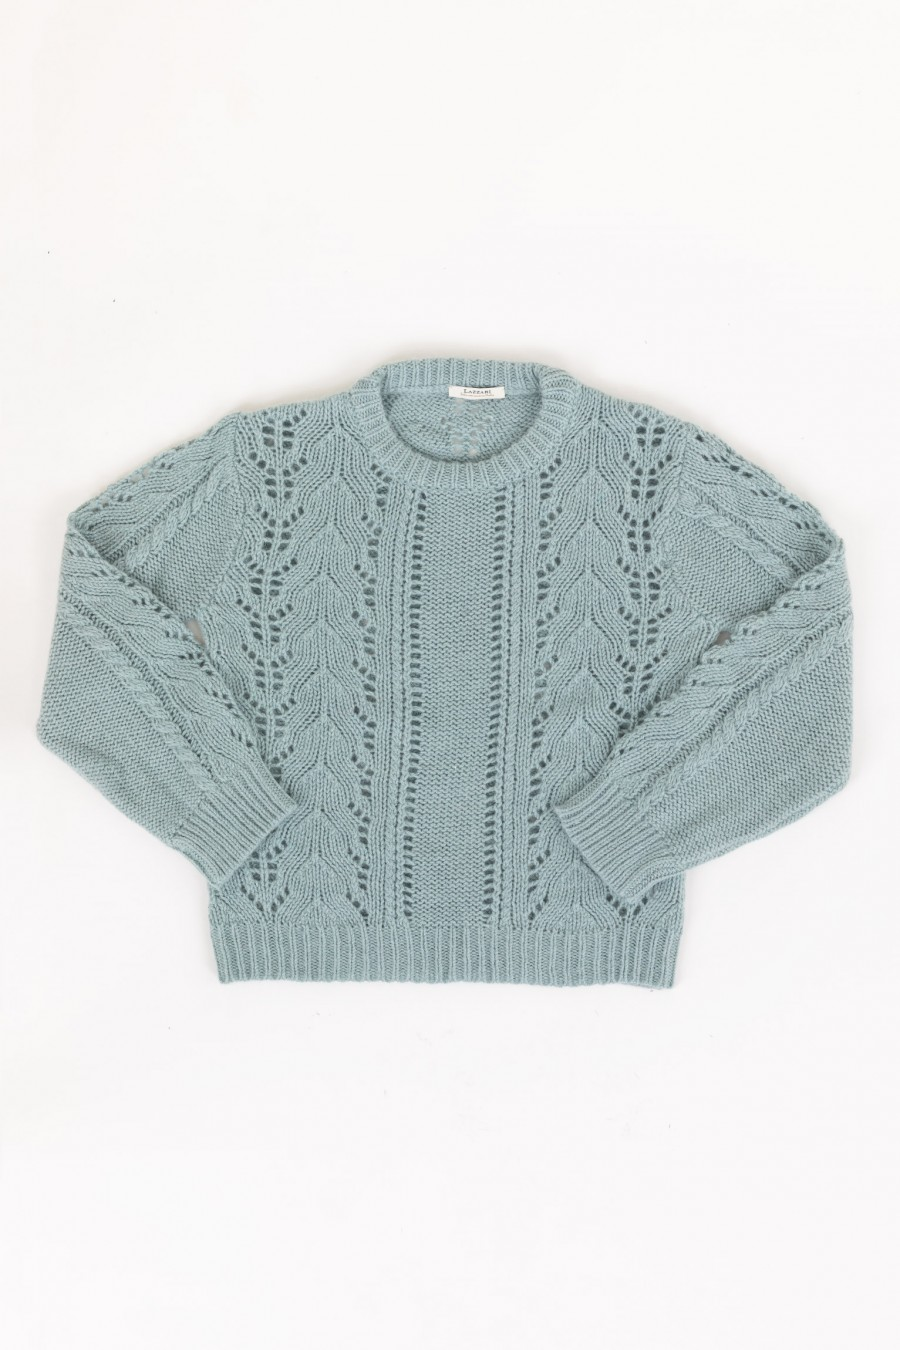 Openwork blue jumper